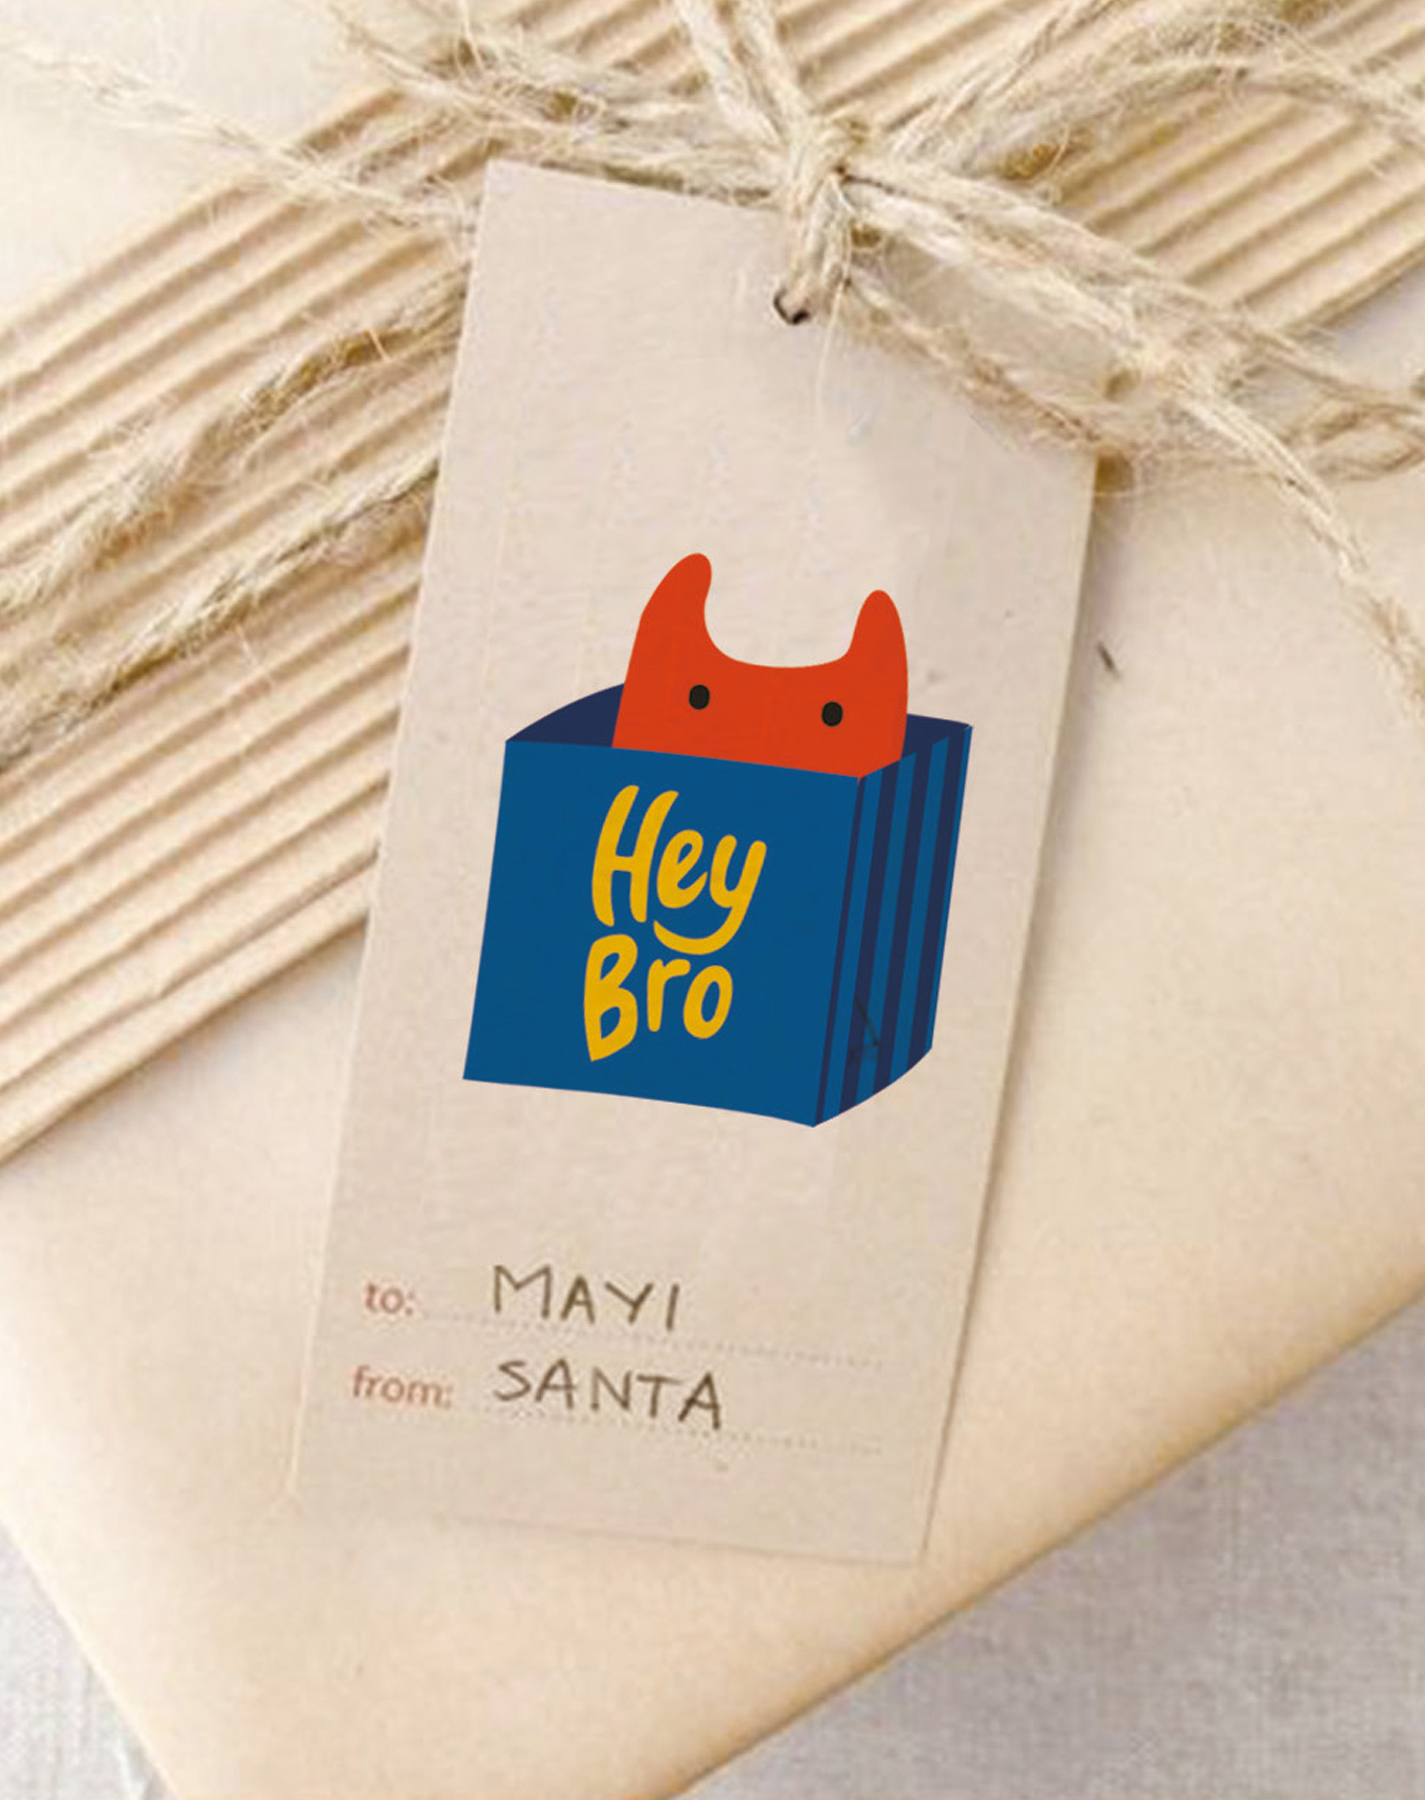 Branding for HEY BRO-image-left